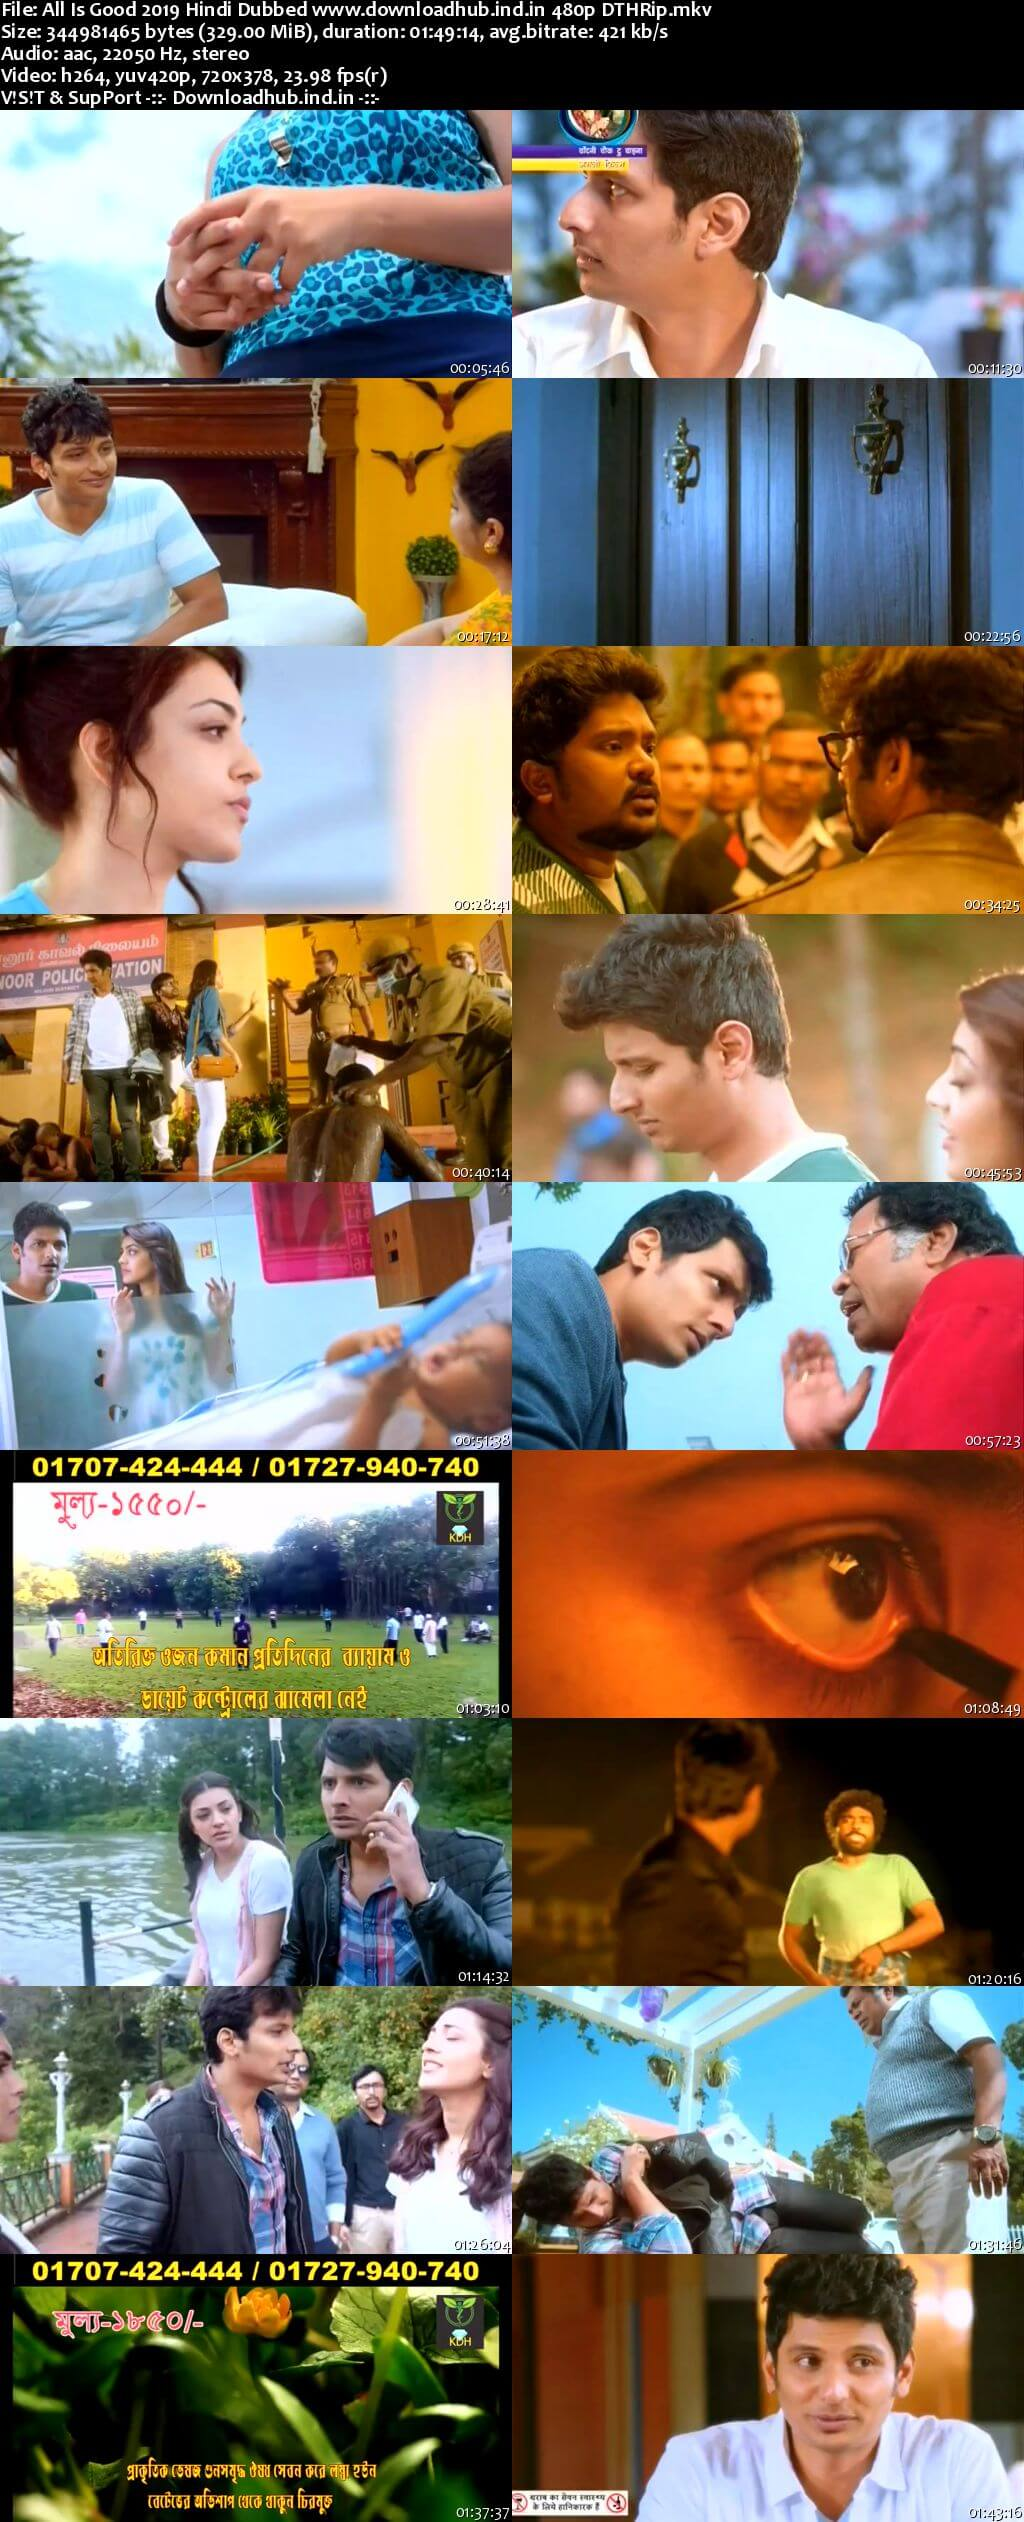 All Is Good 2019 Hindi Dubbed 300MB DTHRip 480p